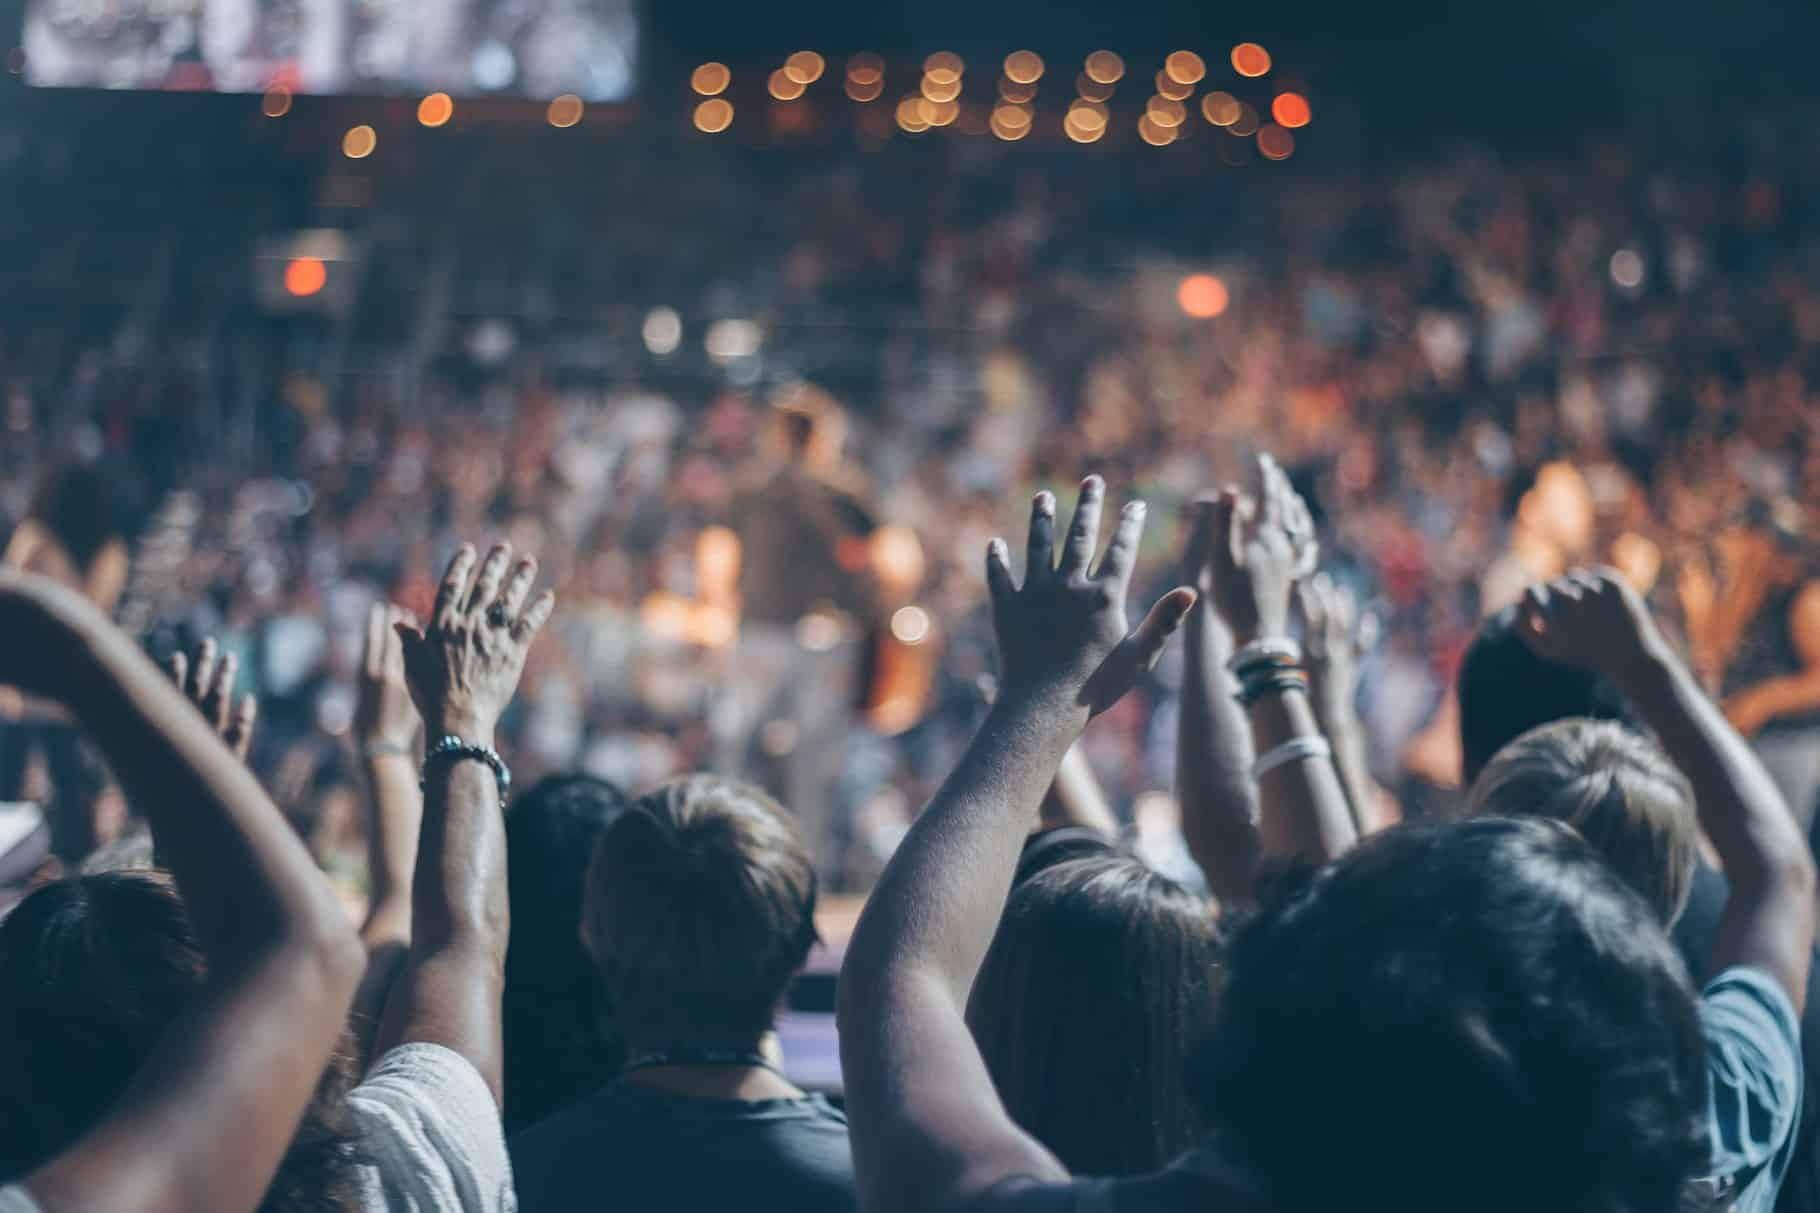 Ticketmaster Plans to Verify Attendee Vaccination Status Using Mobile Tech